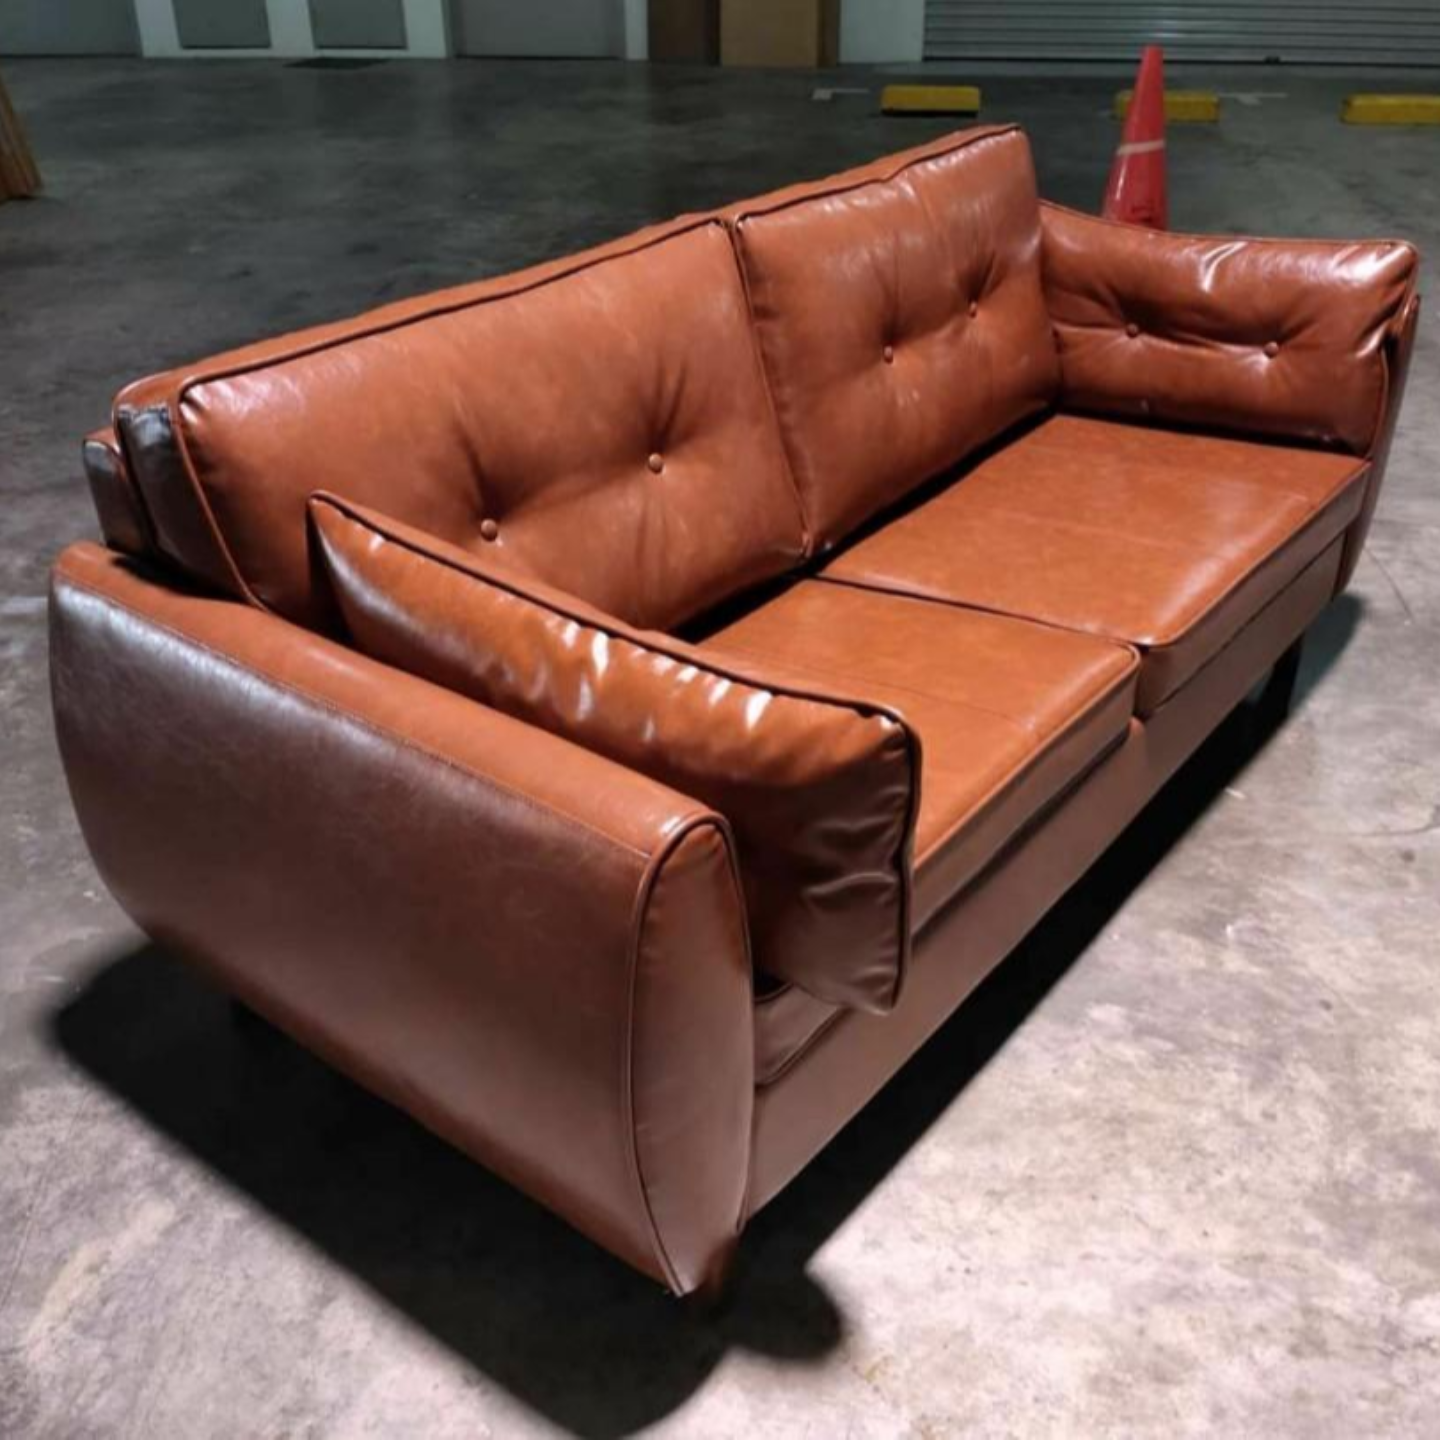 MOVICK Series Designer 3 Seater in GLOSS BROWN PU